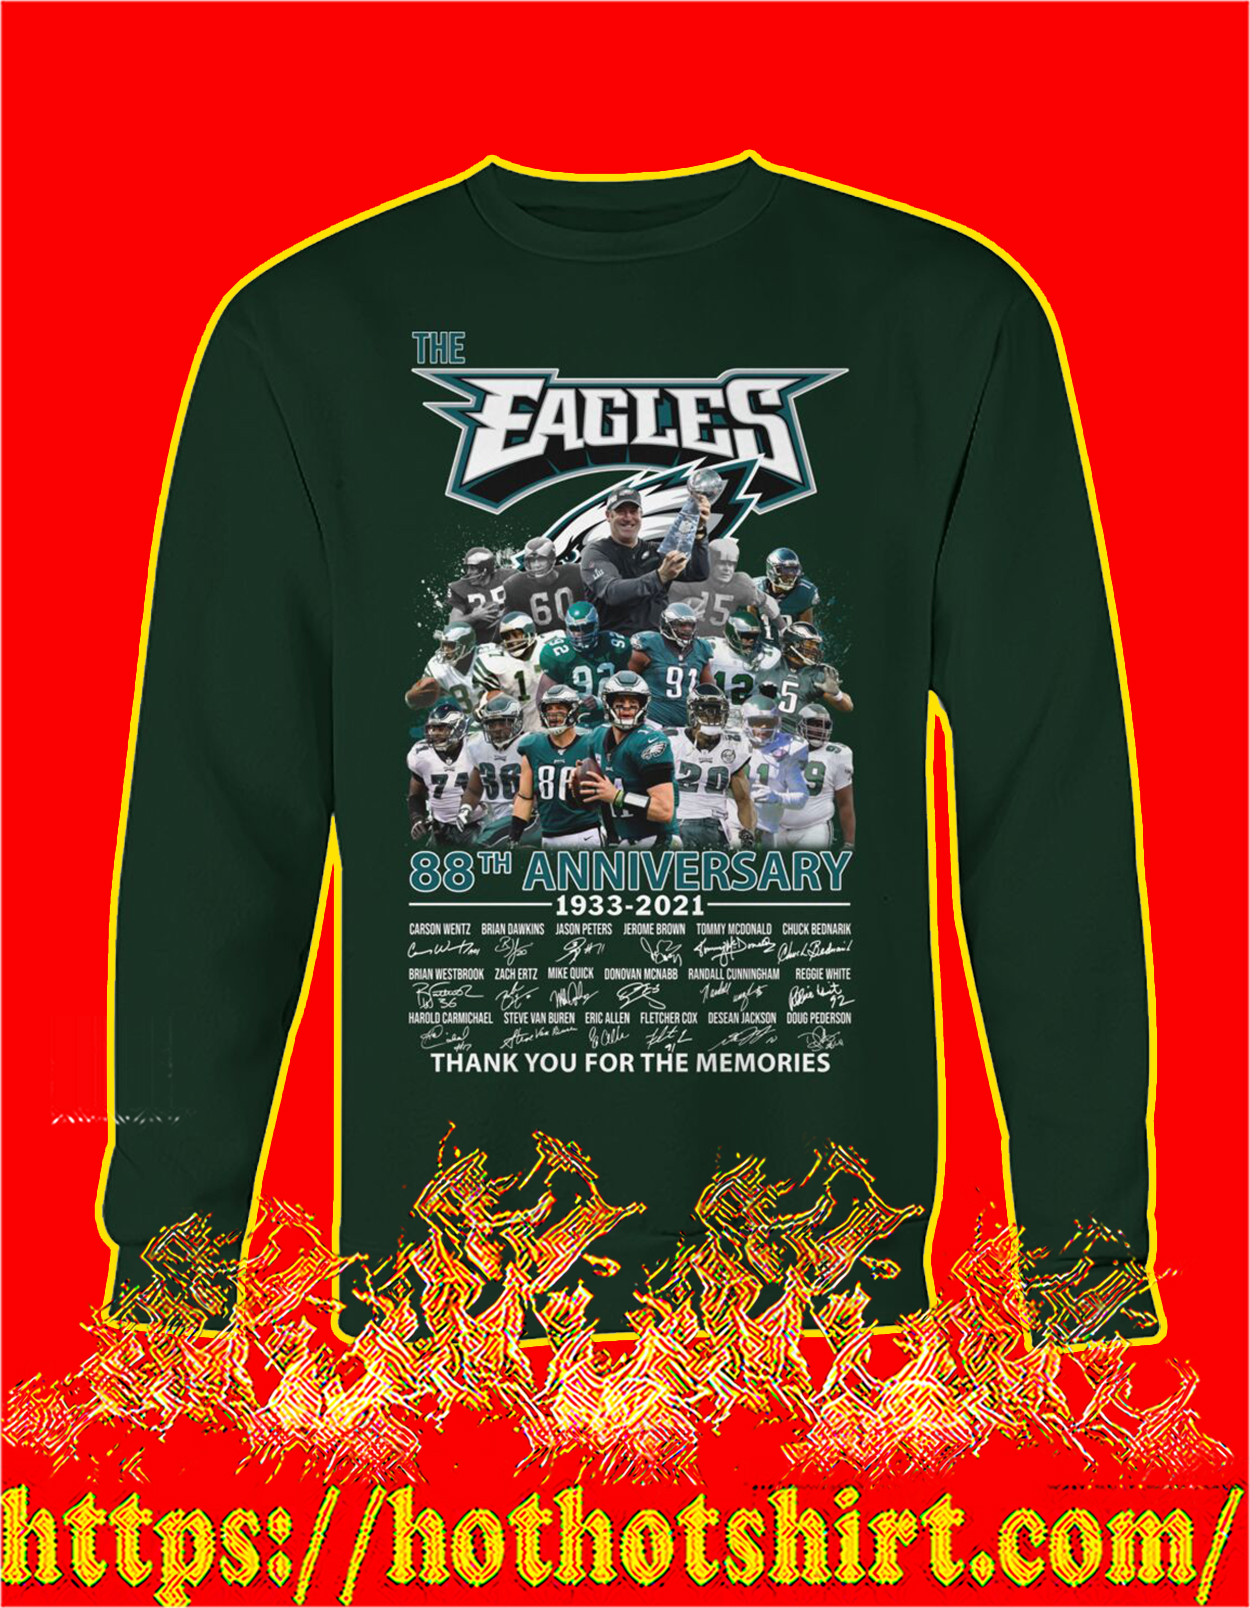 The eagles 88th anniversary thank you for the memories sweatshirt